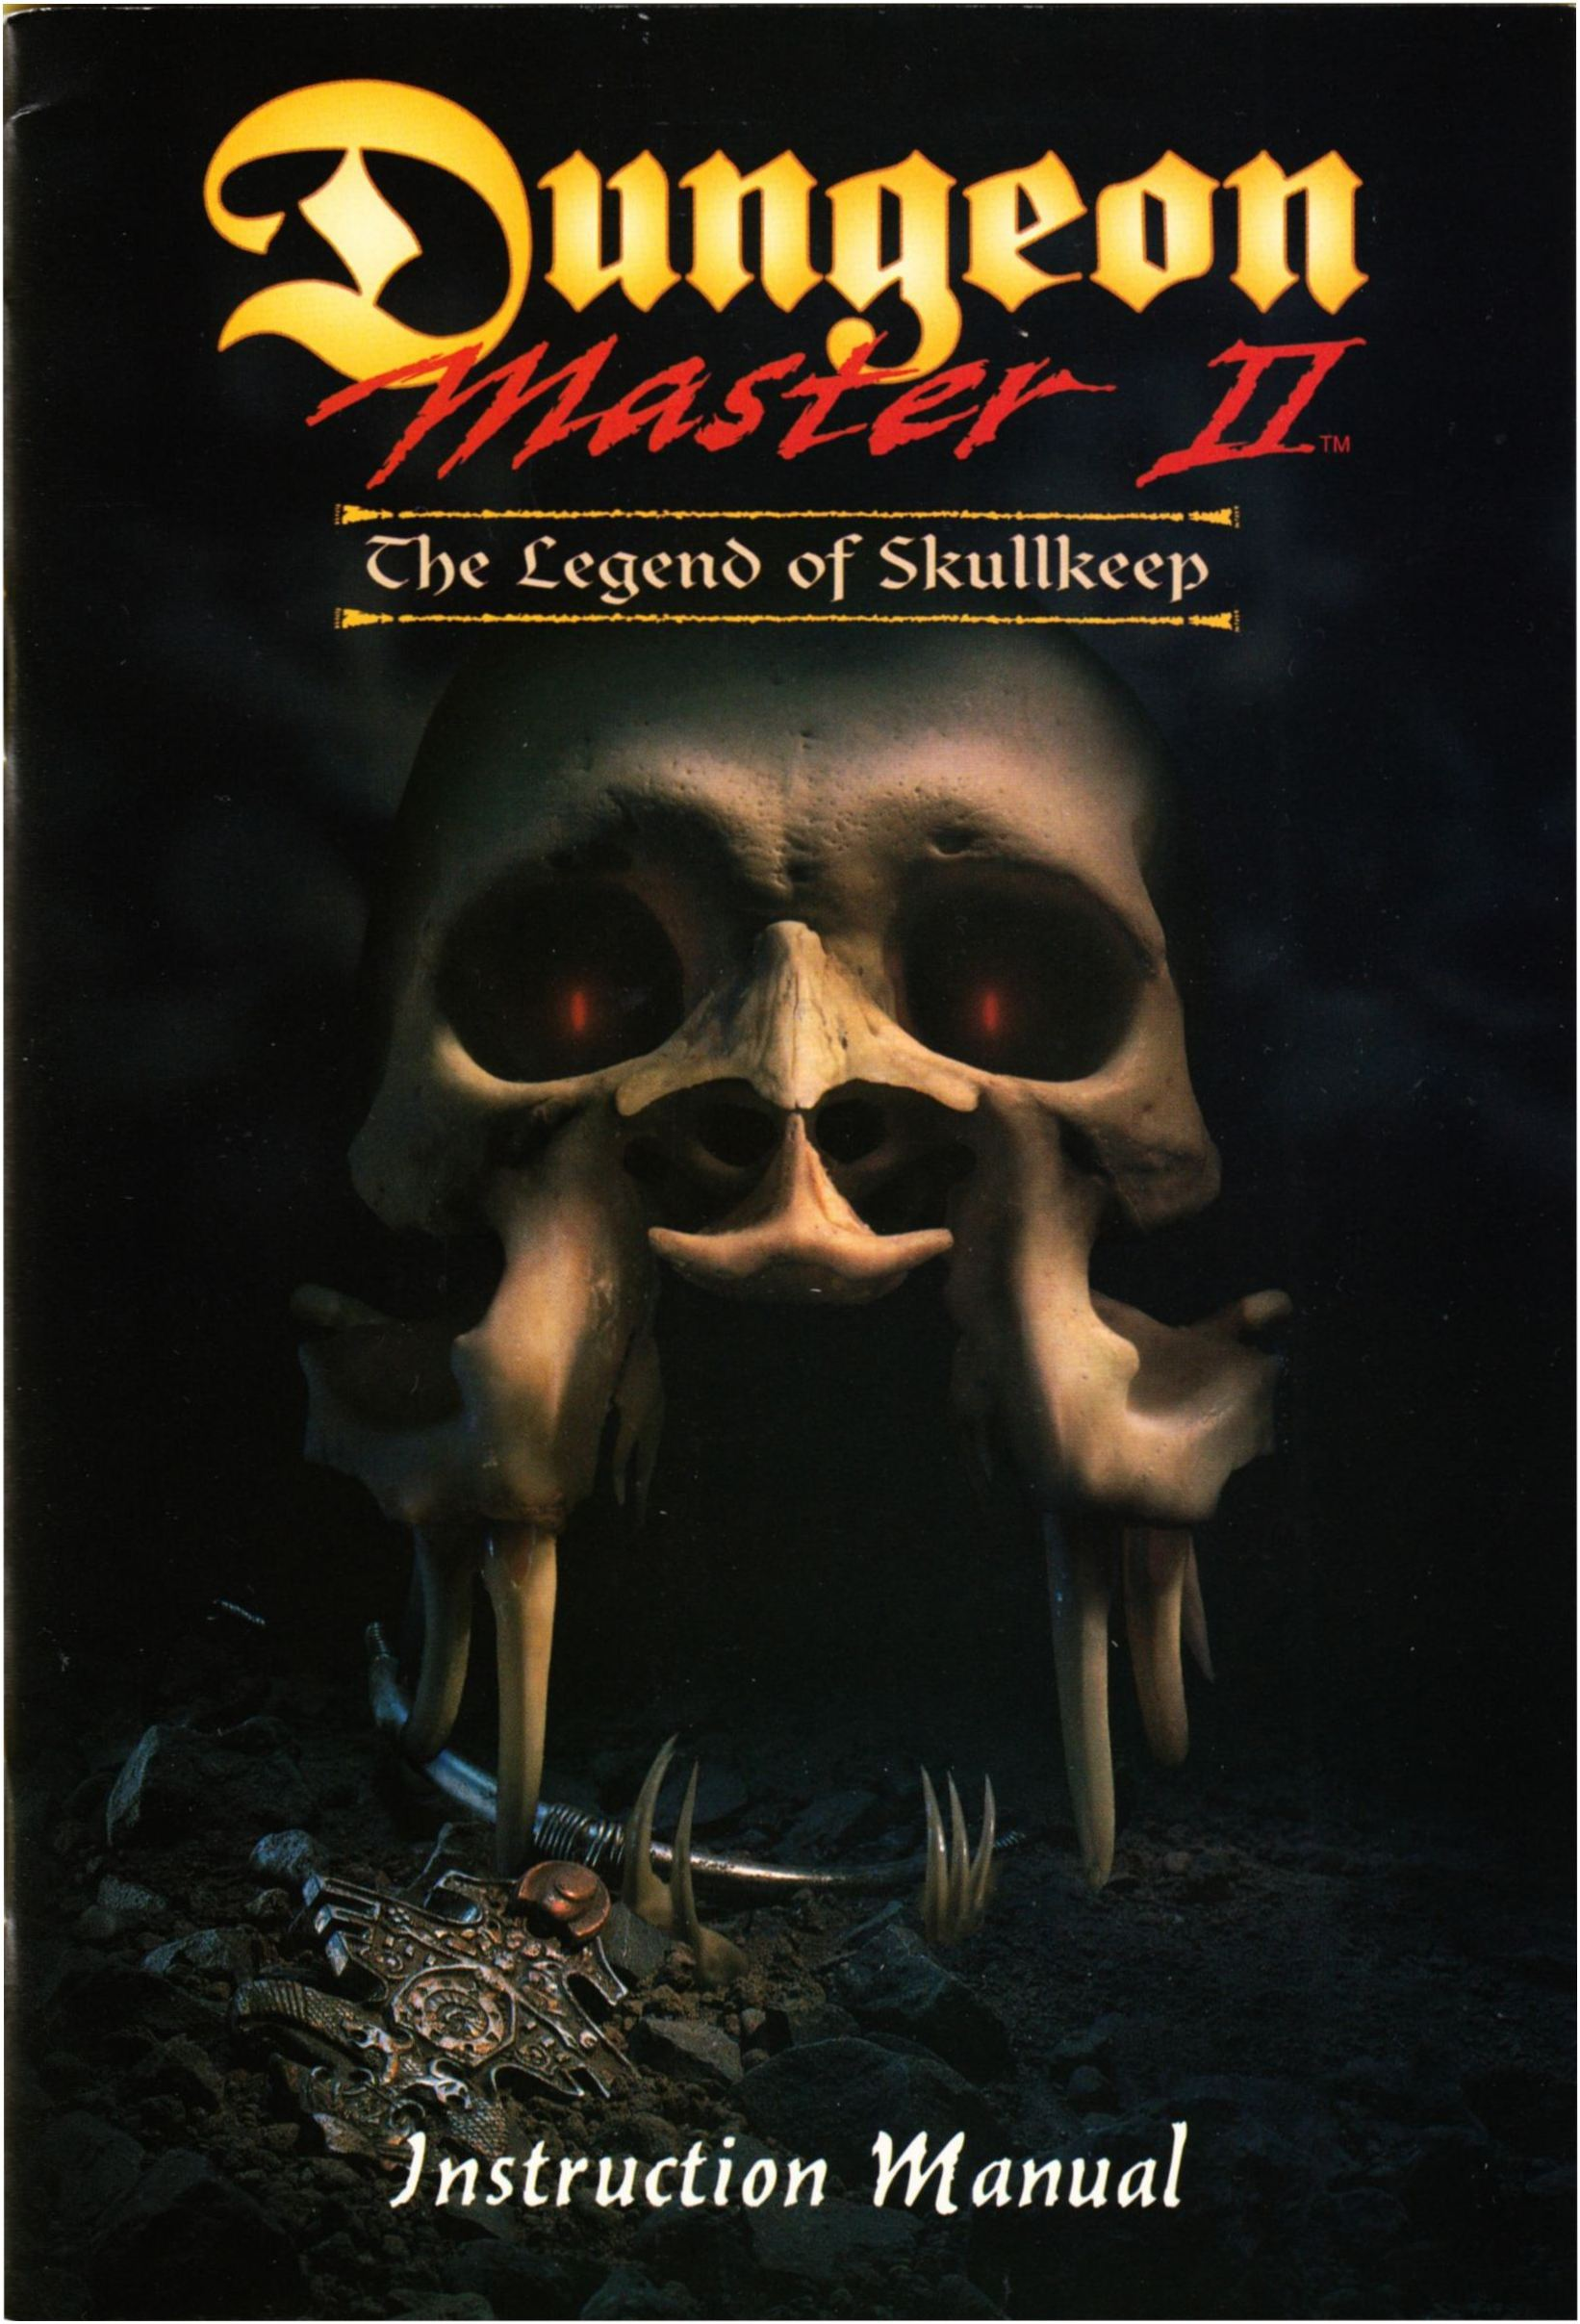 Game - Dungeon Master II - US - PC - Big Box - Manual - Page 001 - Scan